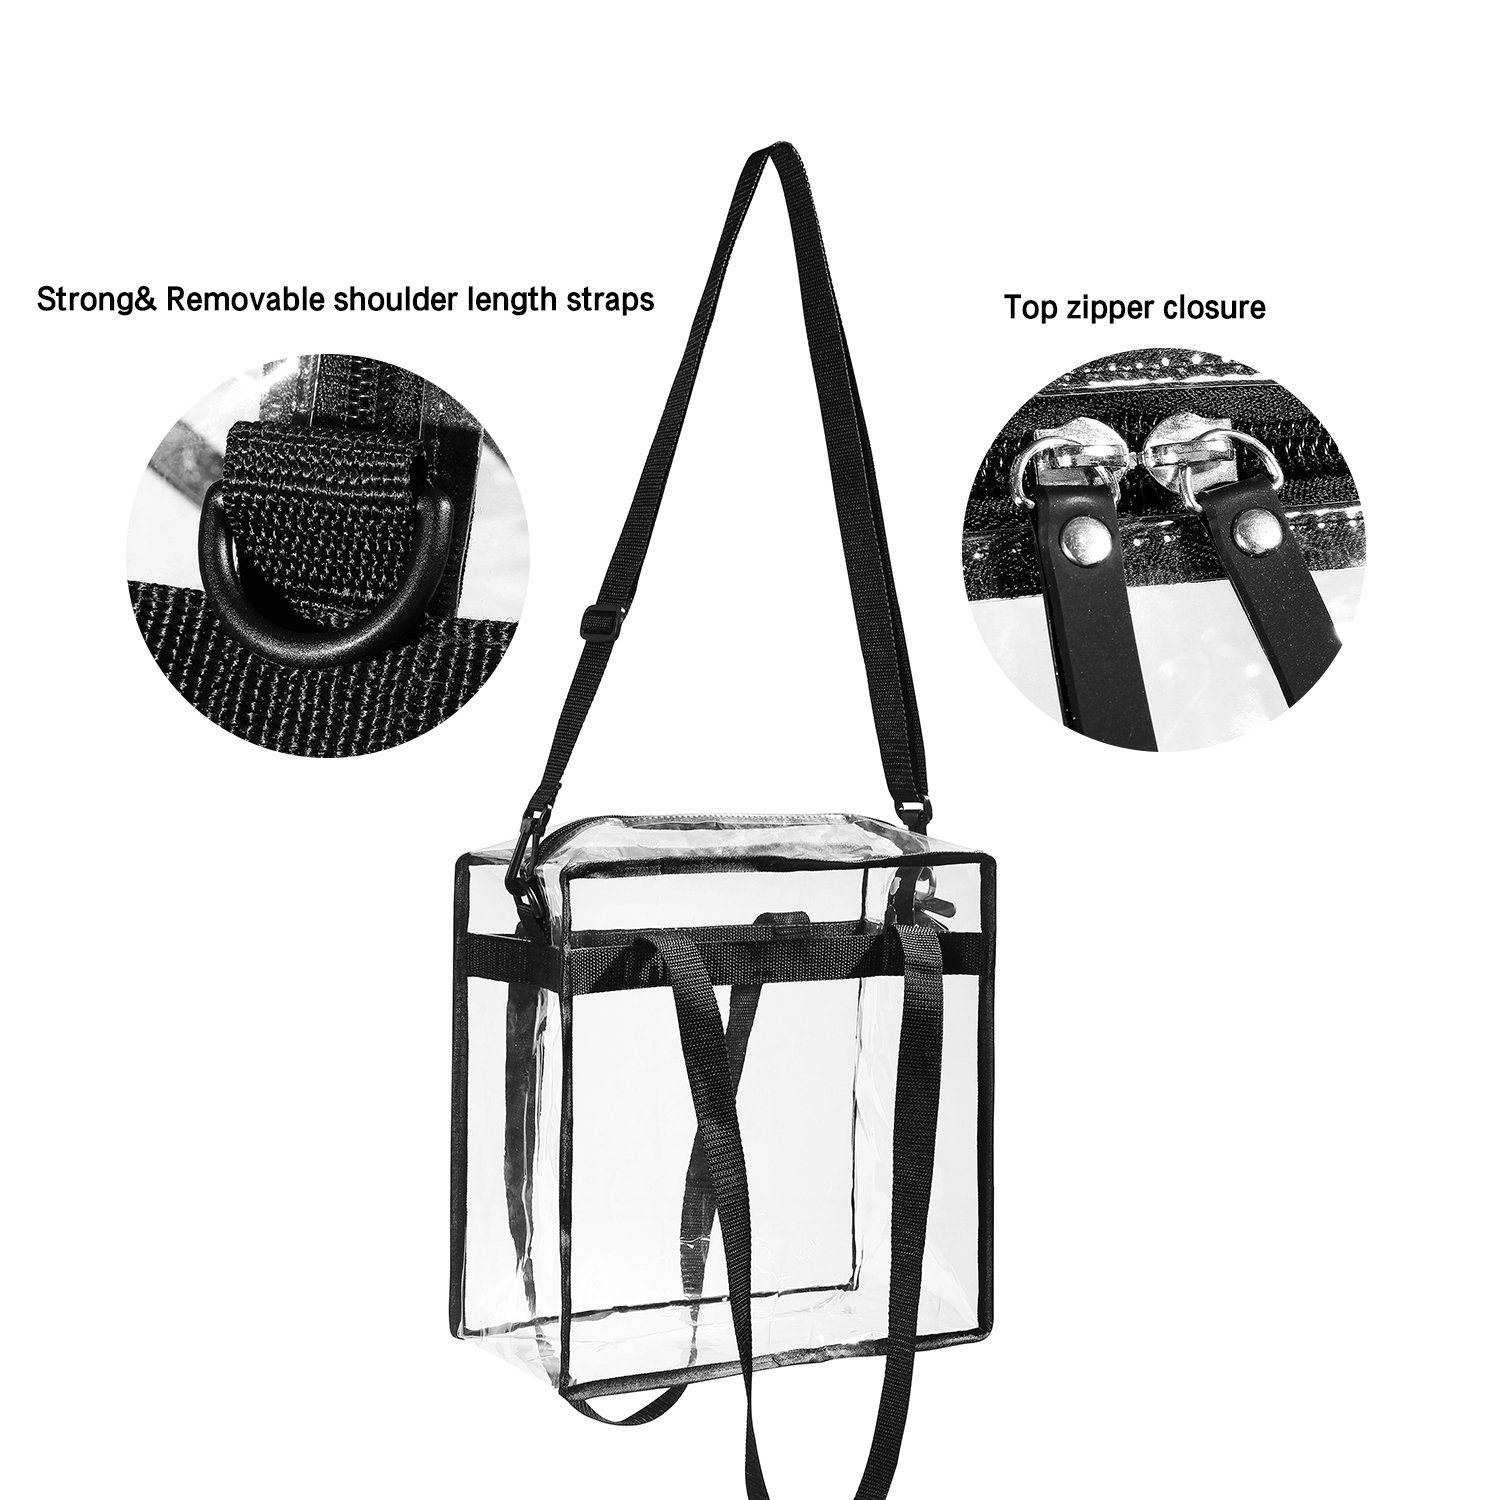 "Clear Bags NFL & PGA Stadium Approved - The Clear Tote Bag with Zipper Closure is Perfect for Work, Sports Games.Cross-Body Messenger Shoulder Bag w Adjustable Strap -12"" X 12"" X 6"" (Two Bag) by BAGAIL (Image #2)"